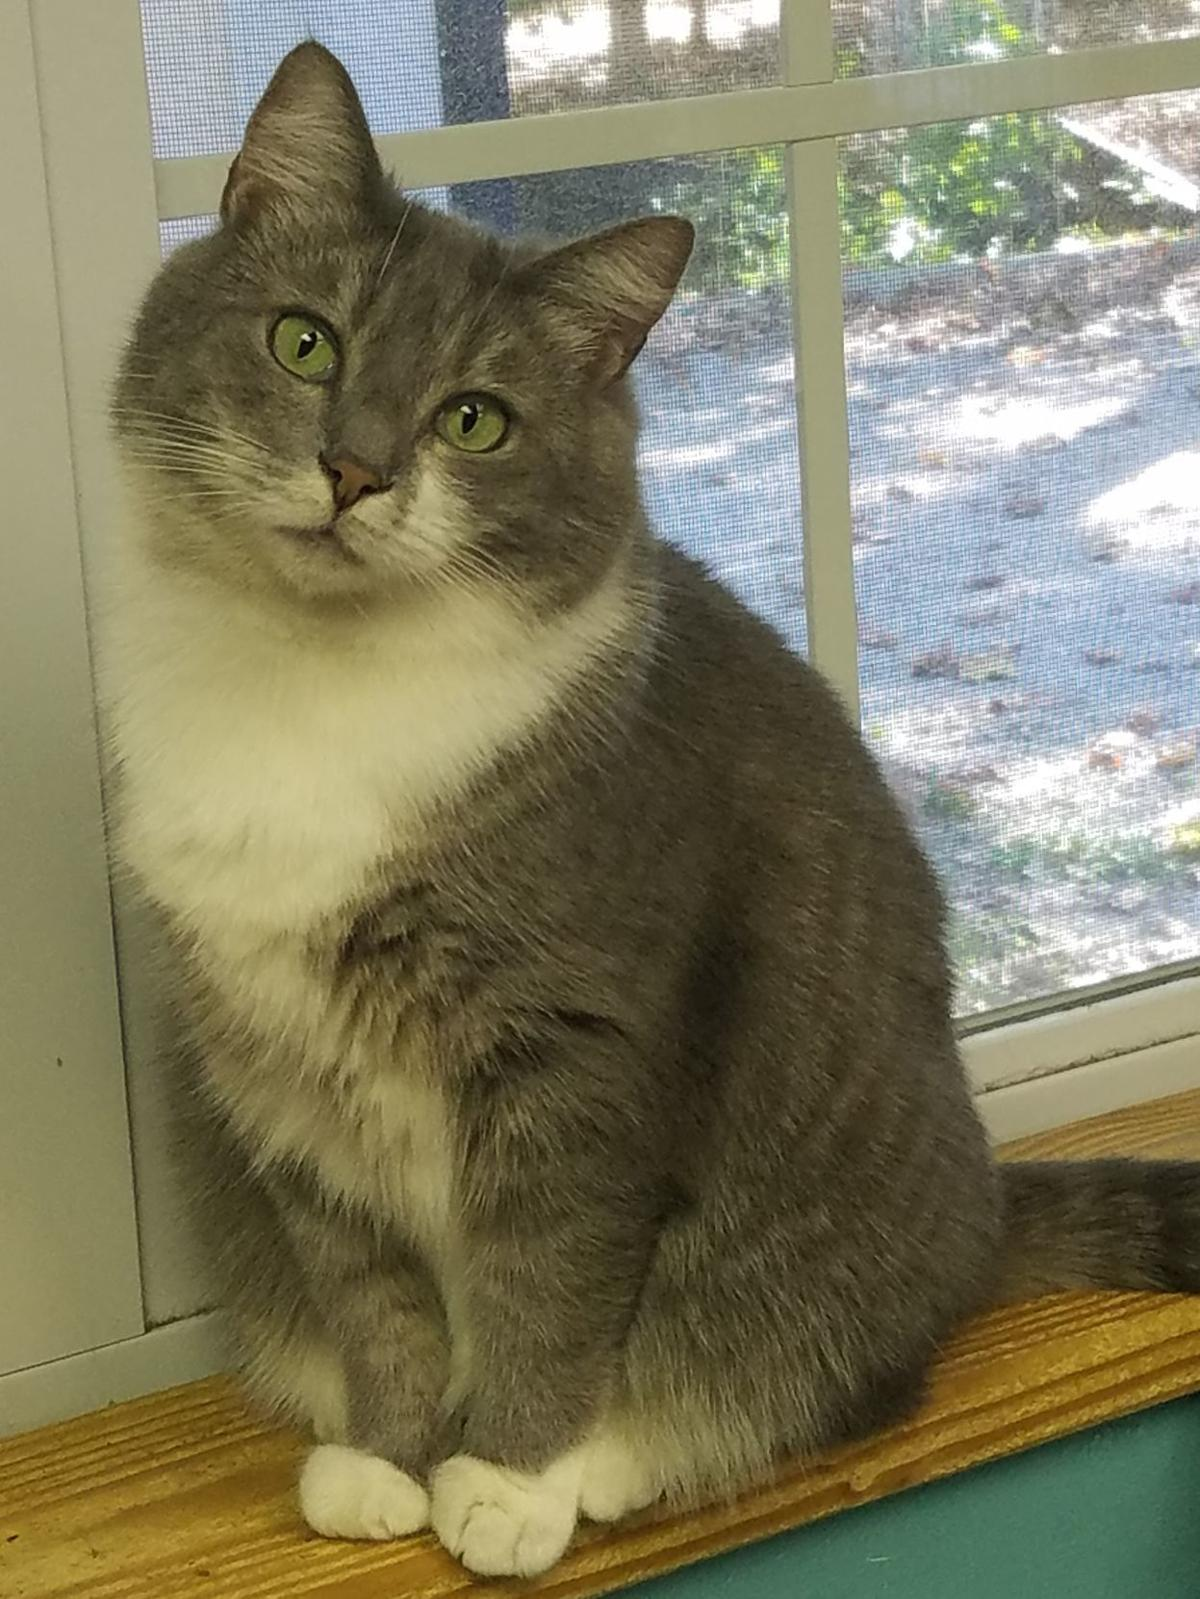 Nelson County Cat of the Week: Odette